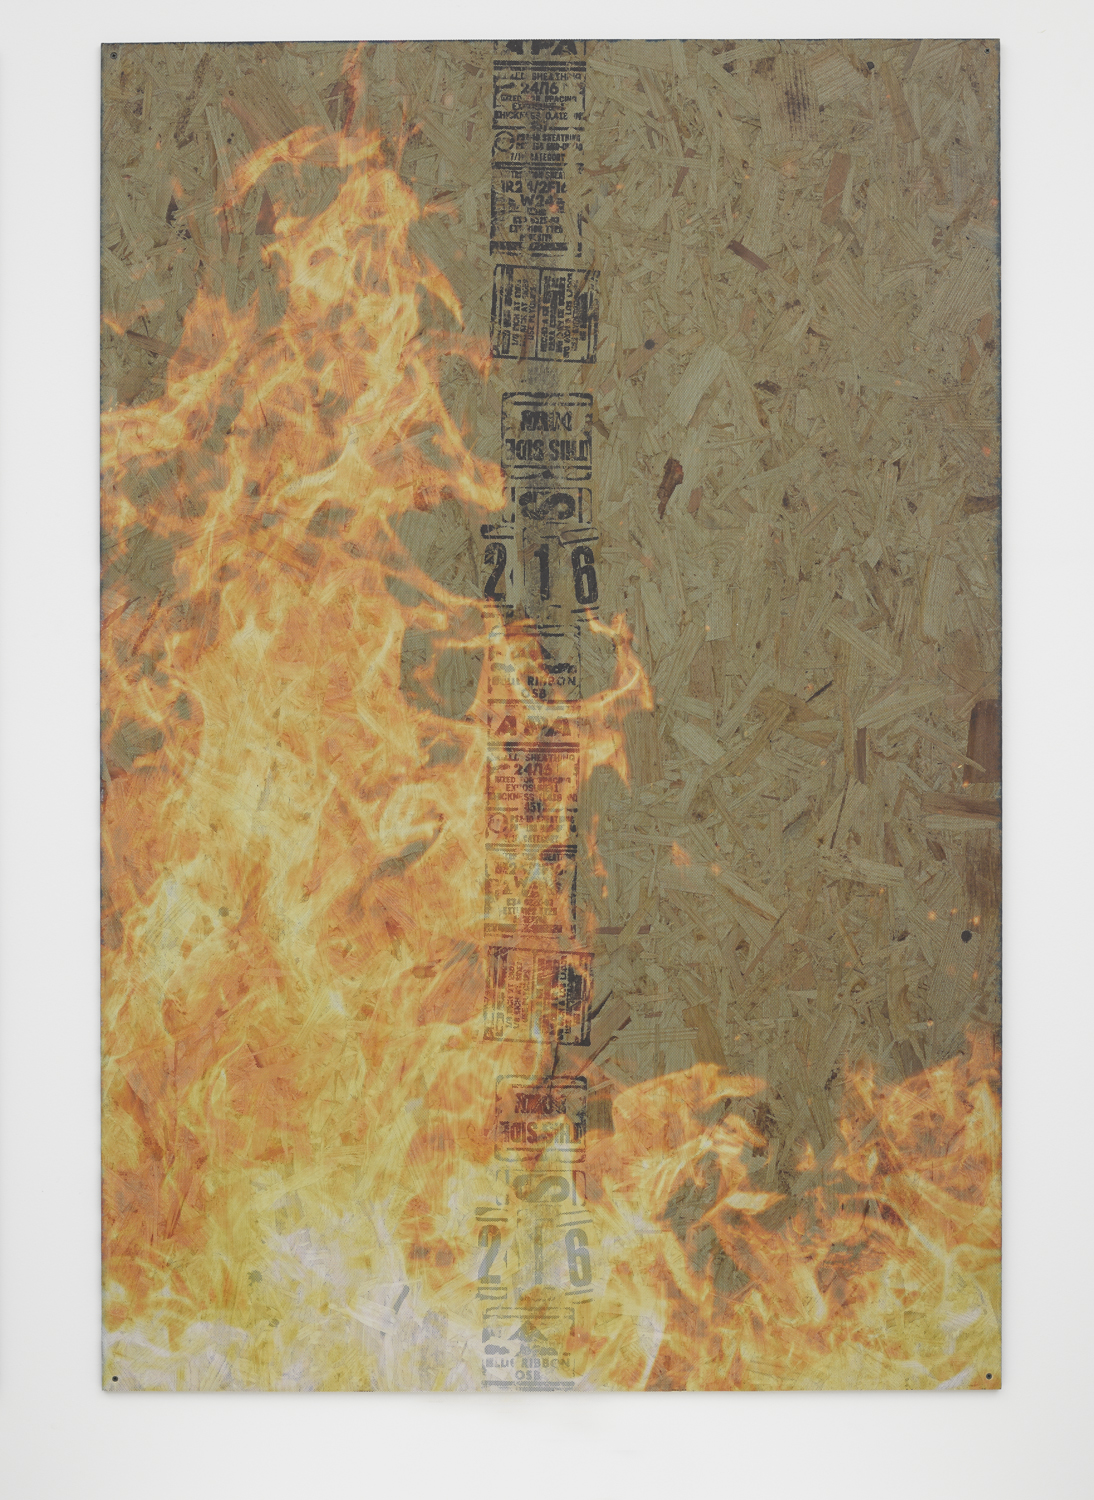 Taco Bell's Burnt Menu   2014   OSB, ink jet printed on perforated vinyl, matte medium   72 x 48 inches